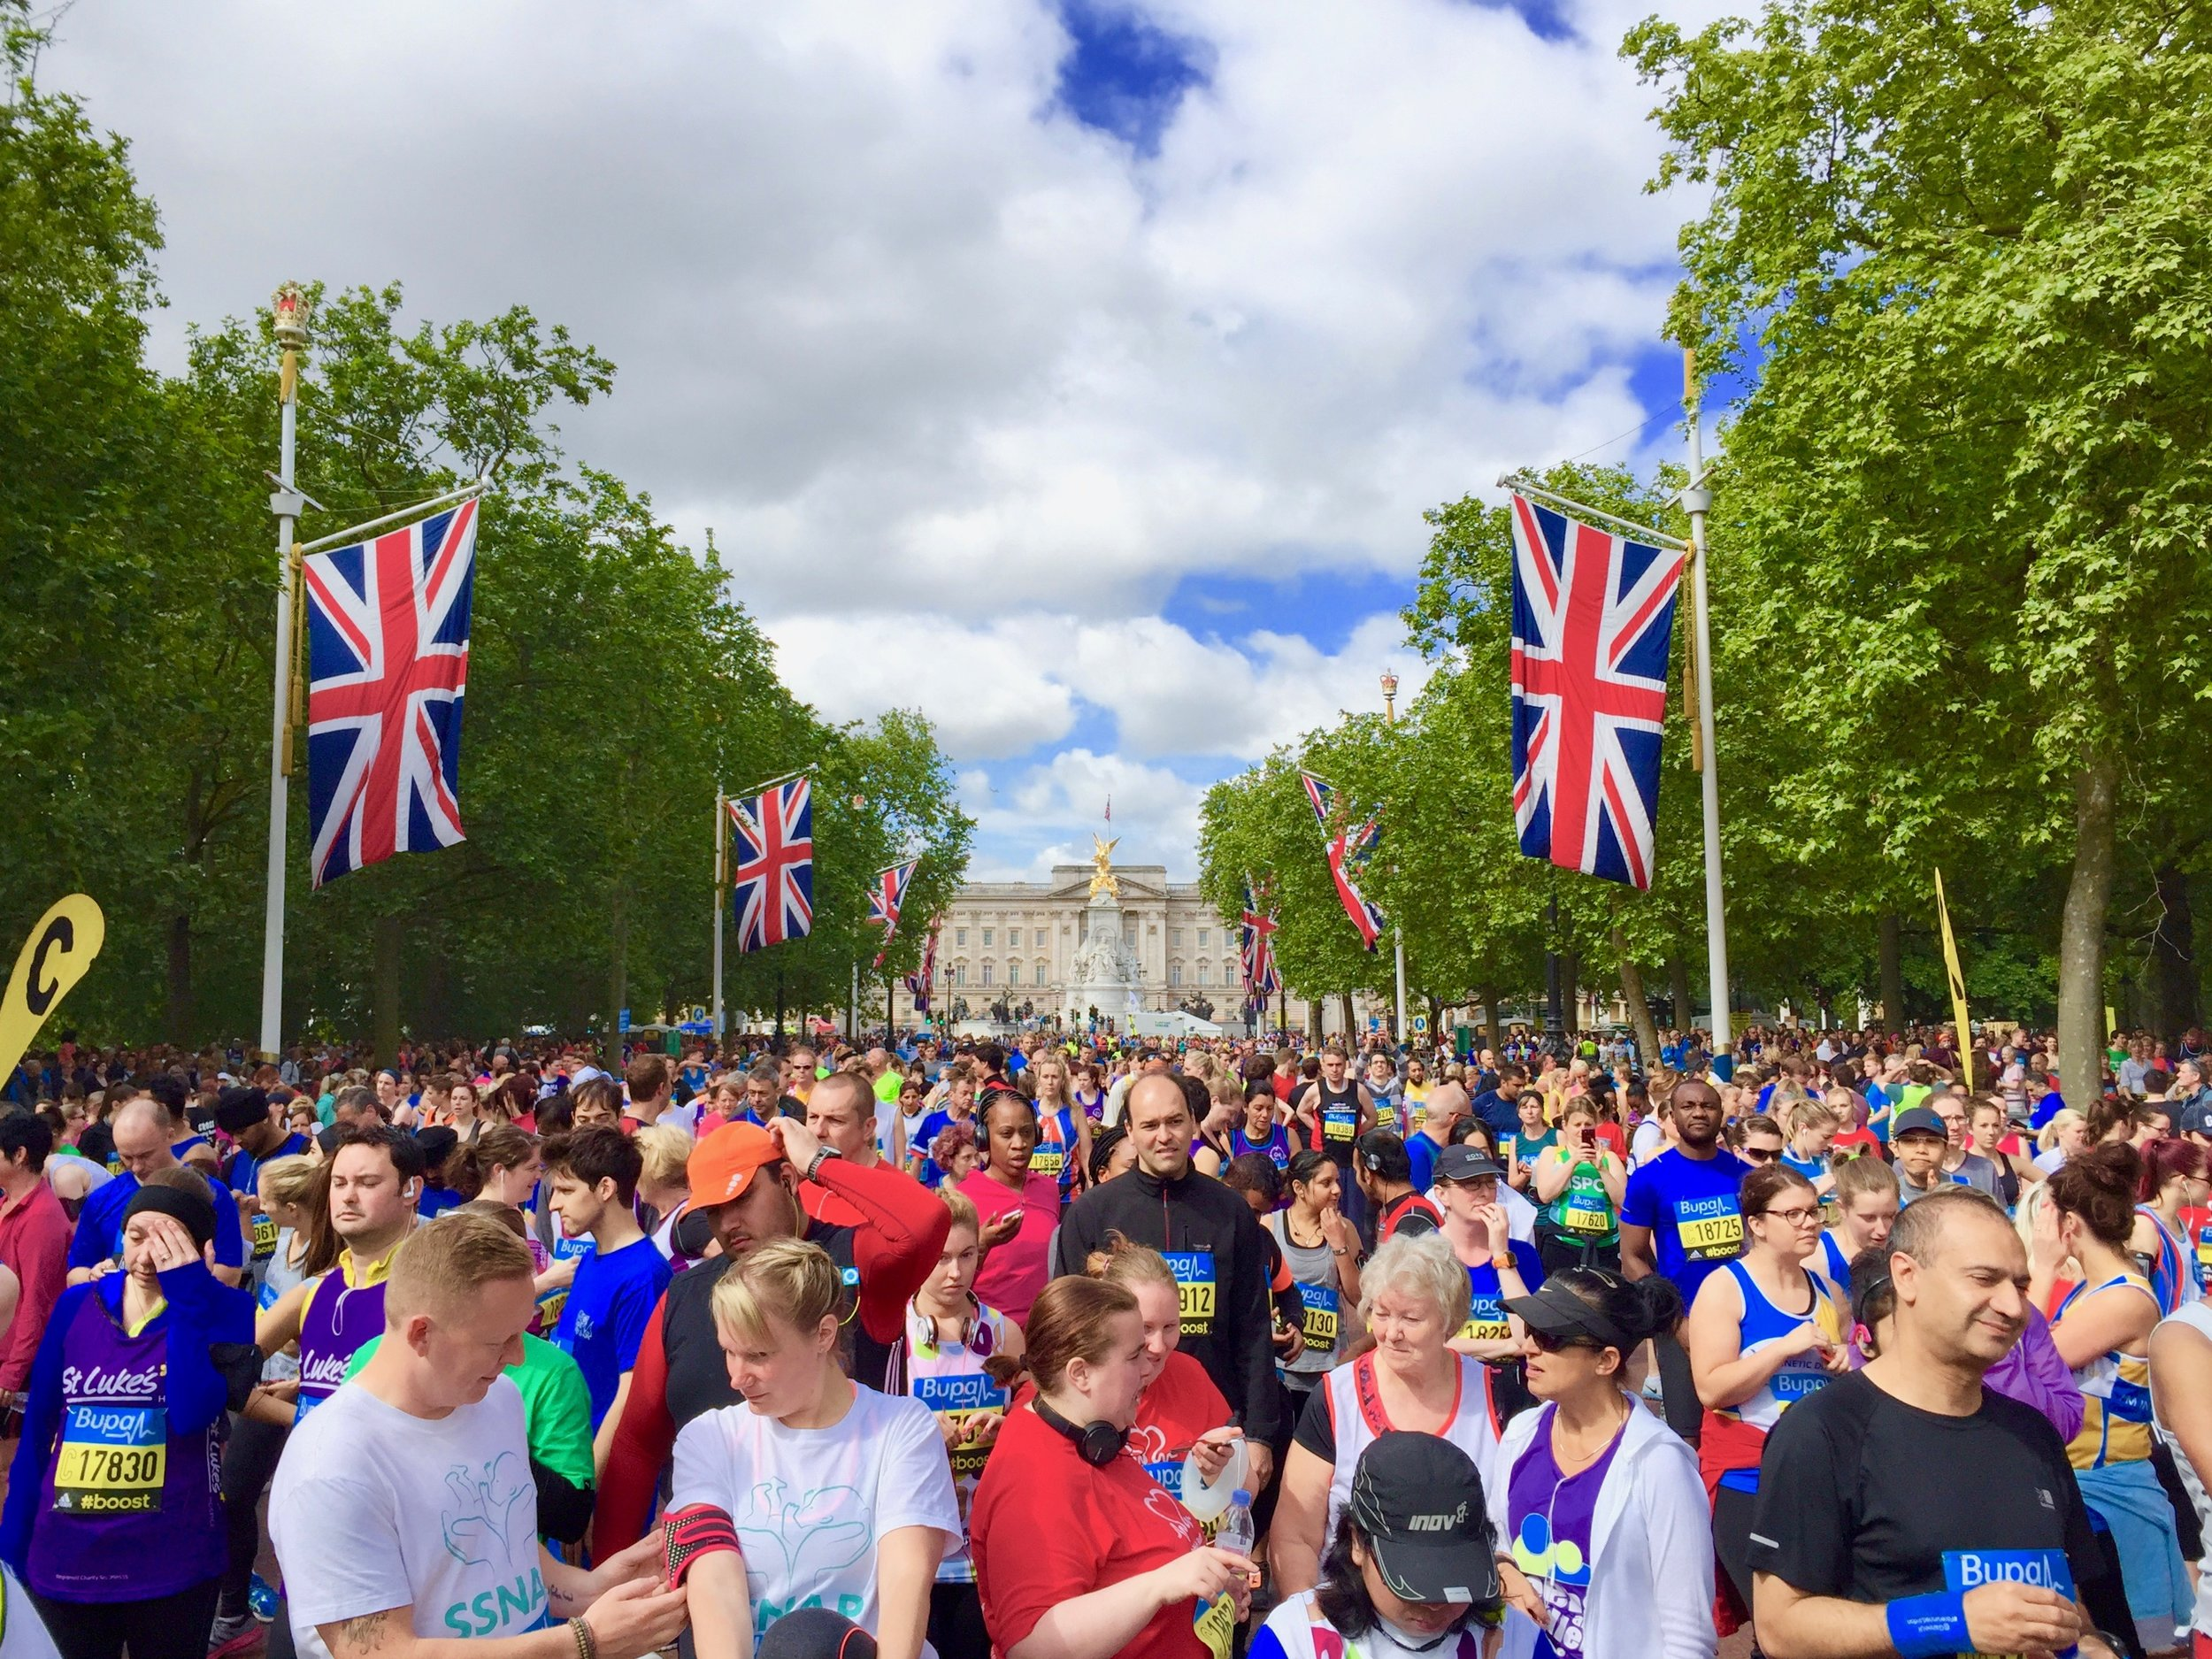 Start of the 10K, Central London, England